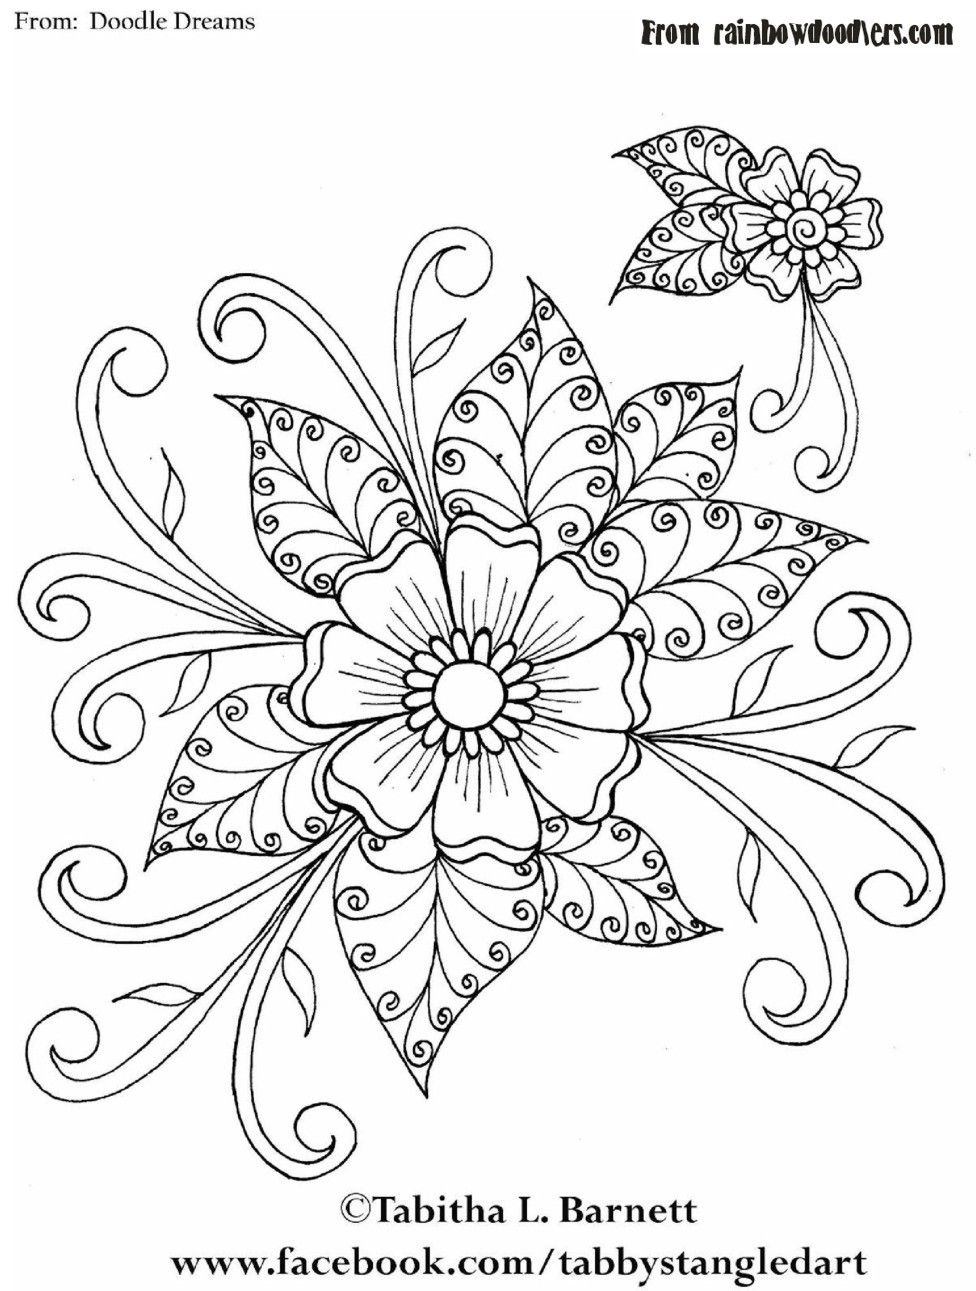 Embroidery Pattern of Henna flower Doodledreams from rainbowdoodlers ...